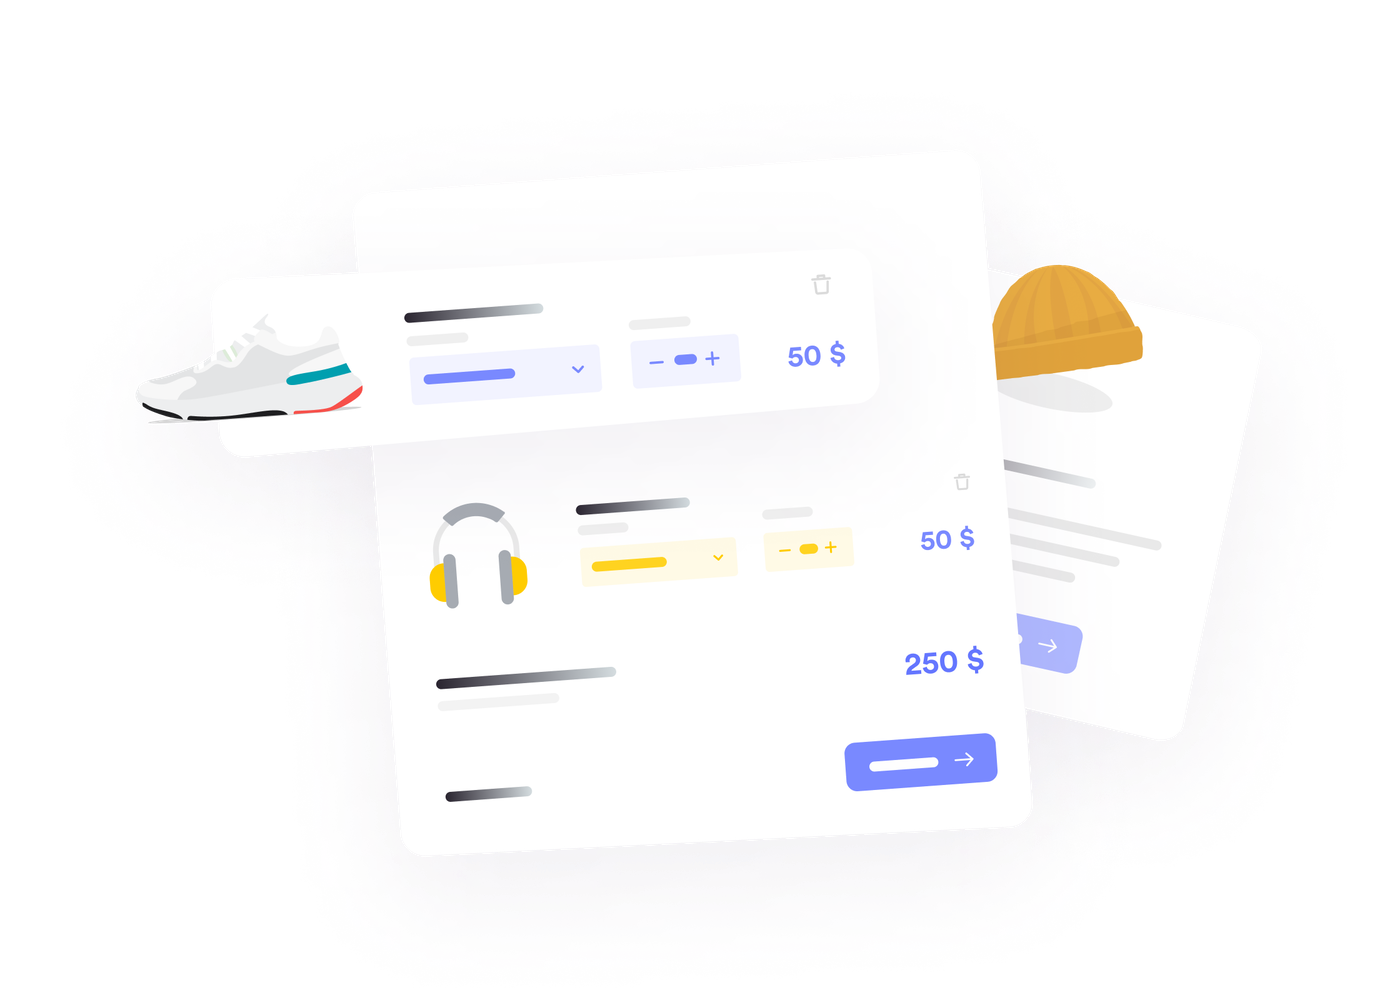 Illustration of physical products added in shopping cart